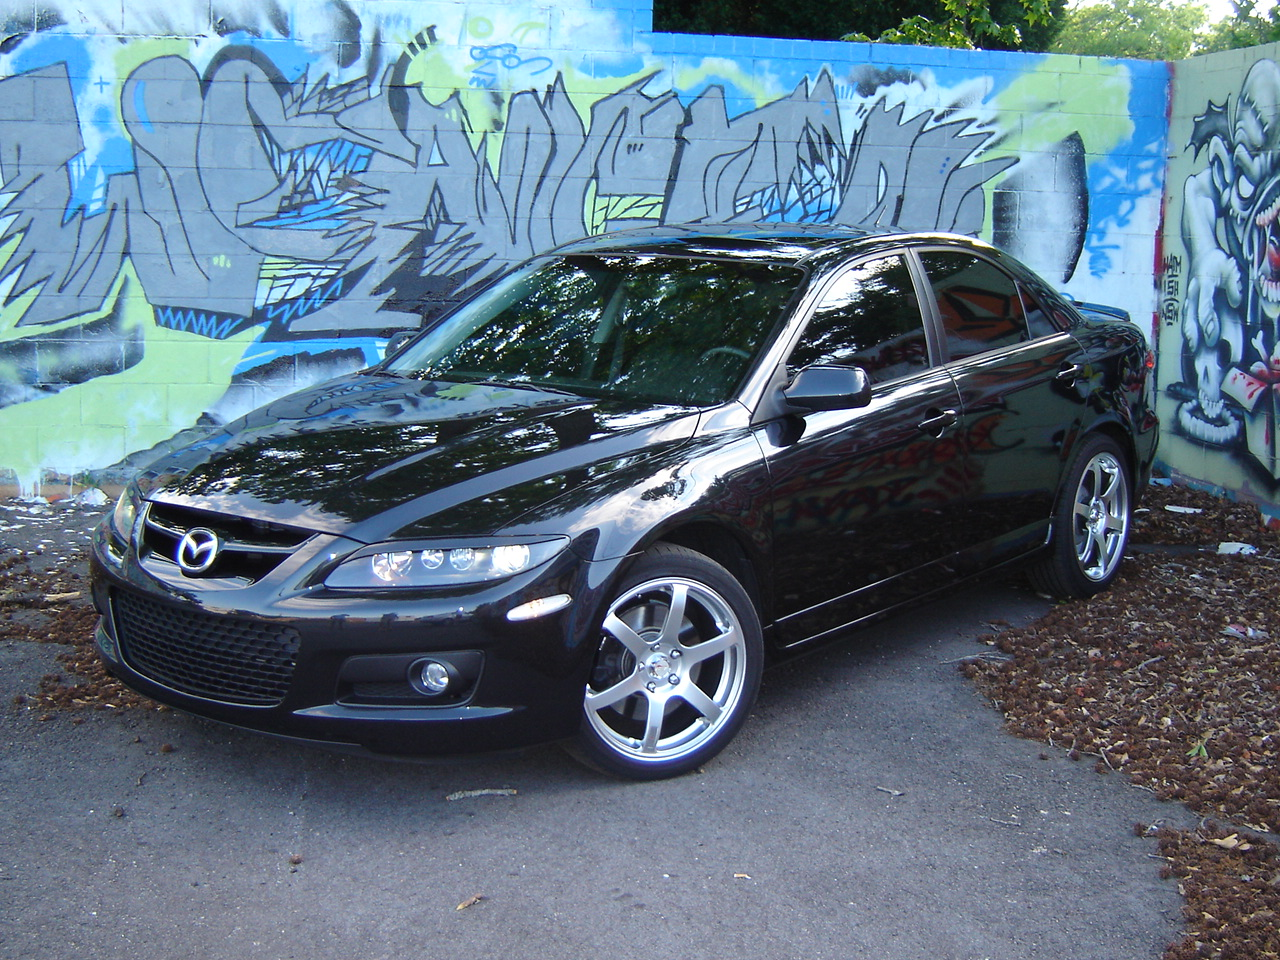 Mazda mazda 6 2004 review : Mazda 6 2002: Review, Amazing Pictures and Images – Look at the car